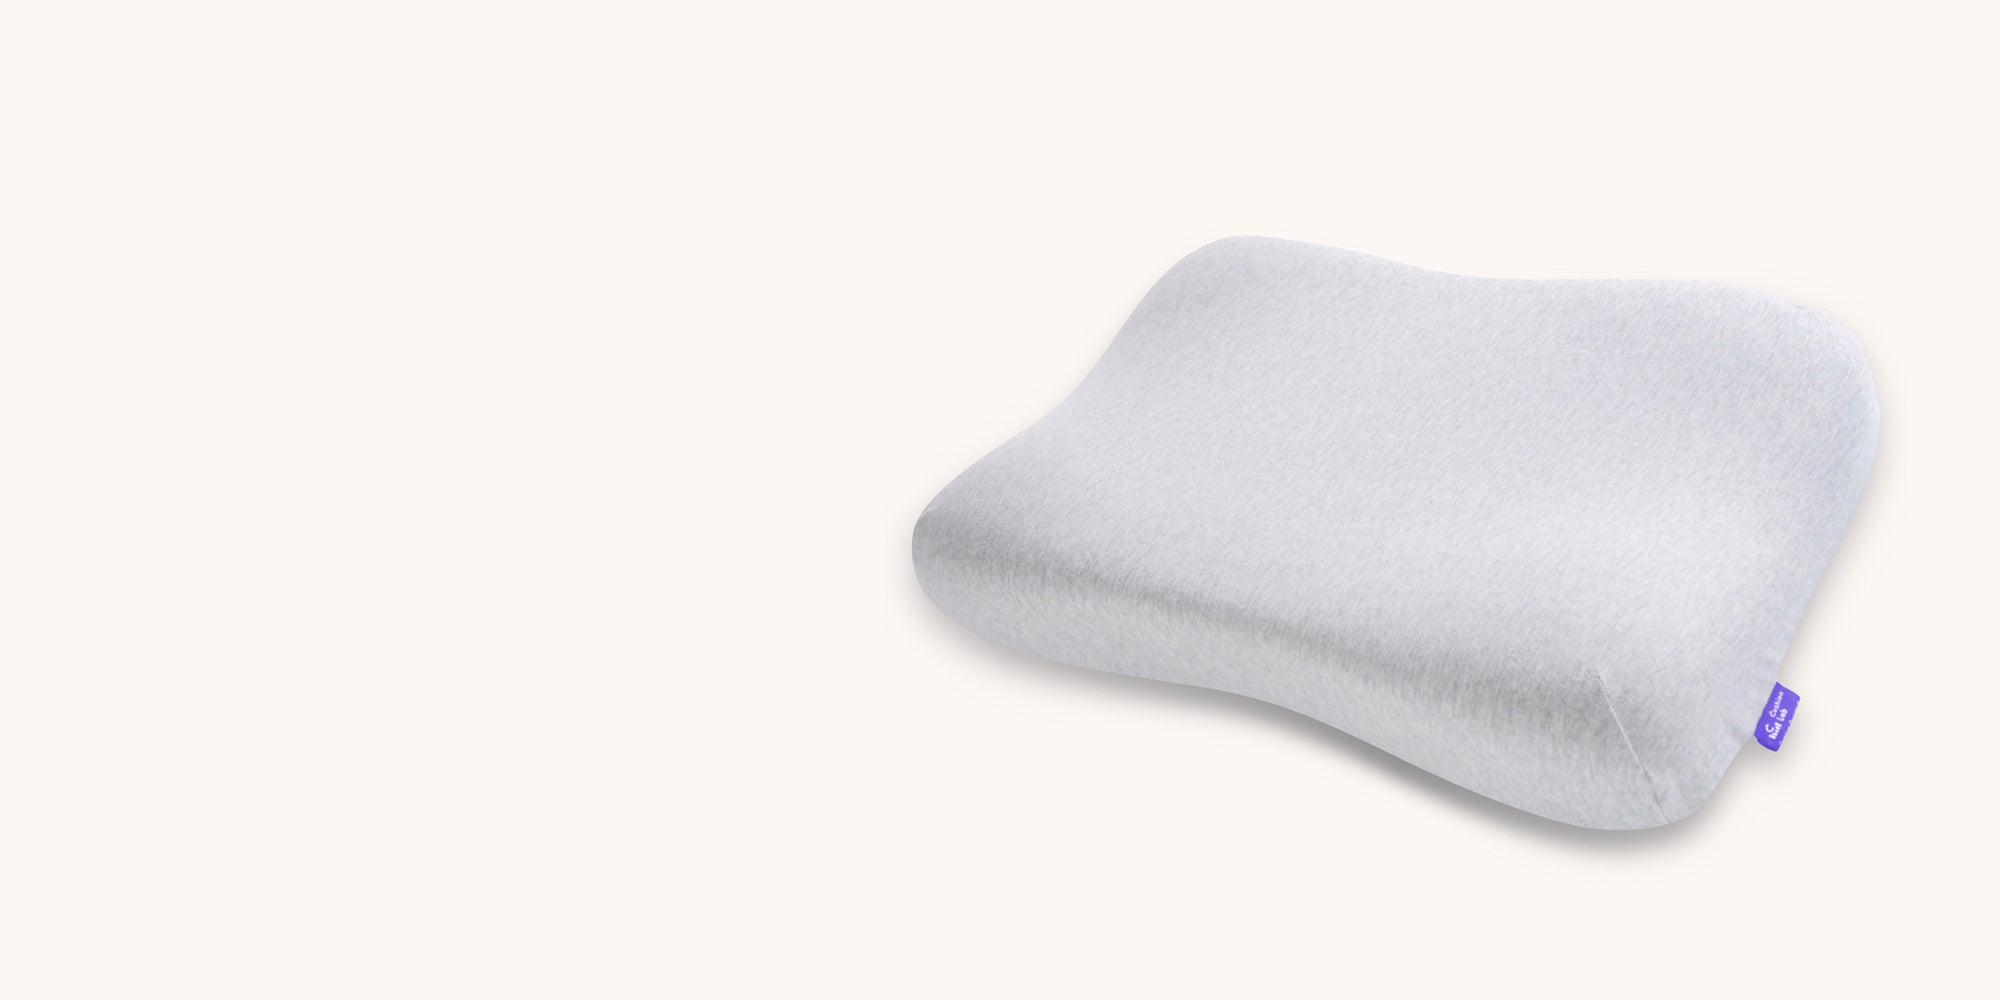 Cushion Lab Ergonomic Contour Pillow, Gel-Infused Contoured Ergonomic Memory Foam Pillow for Sleeping